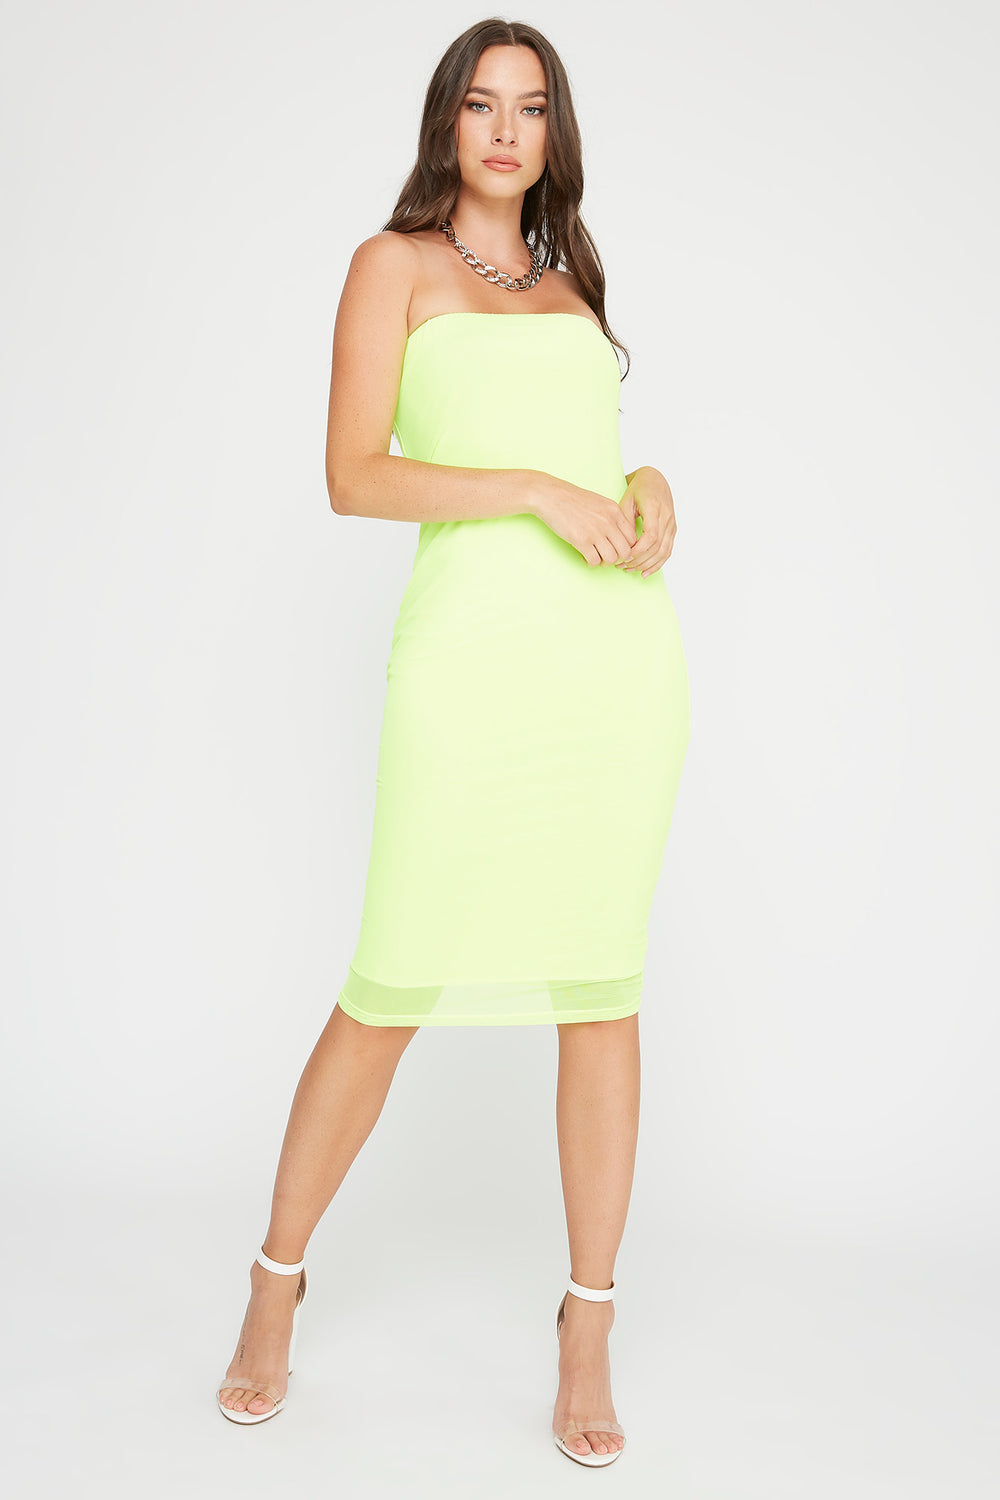 Strapless Bodycon Midi Dress Neon Green